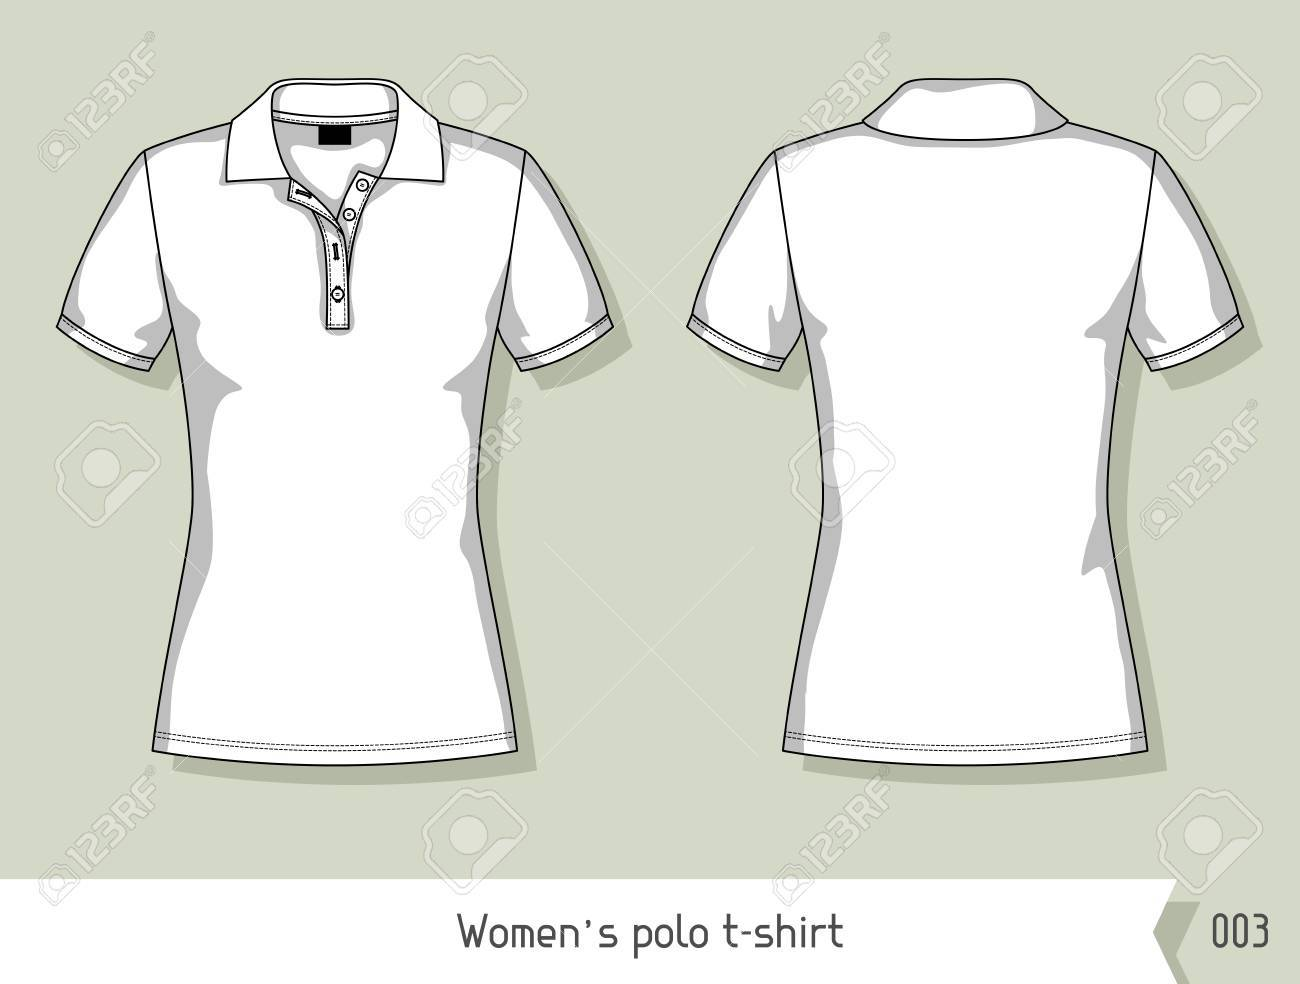 women polo t shirt template for design easily editable by layers